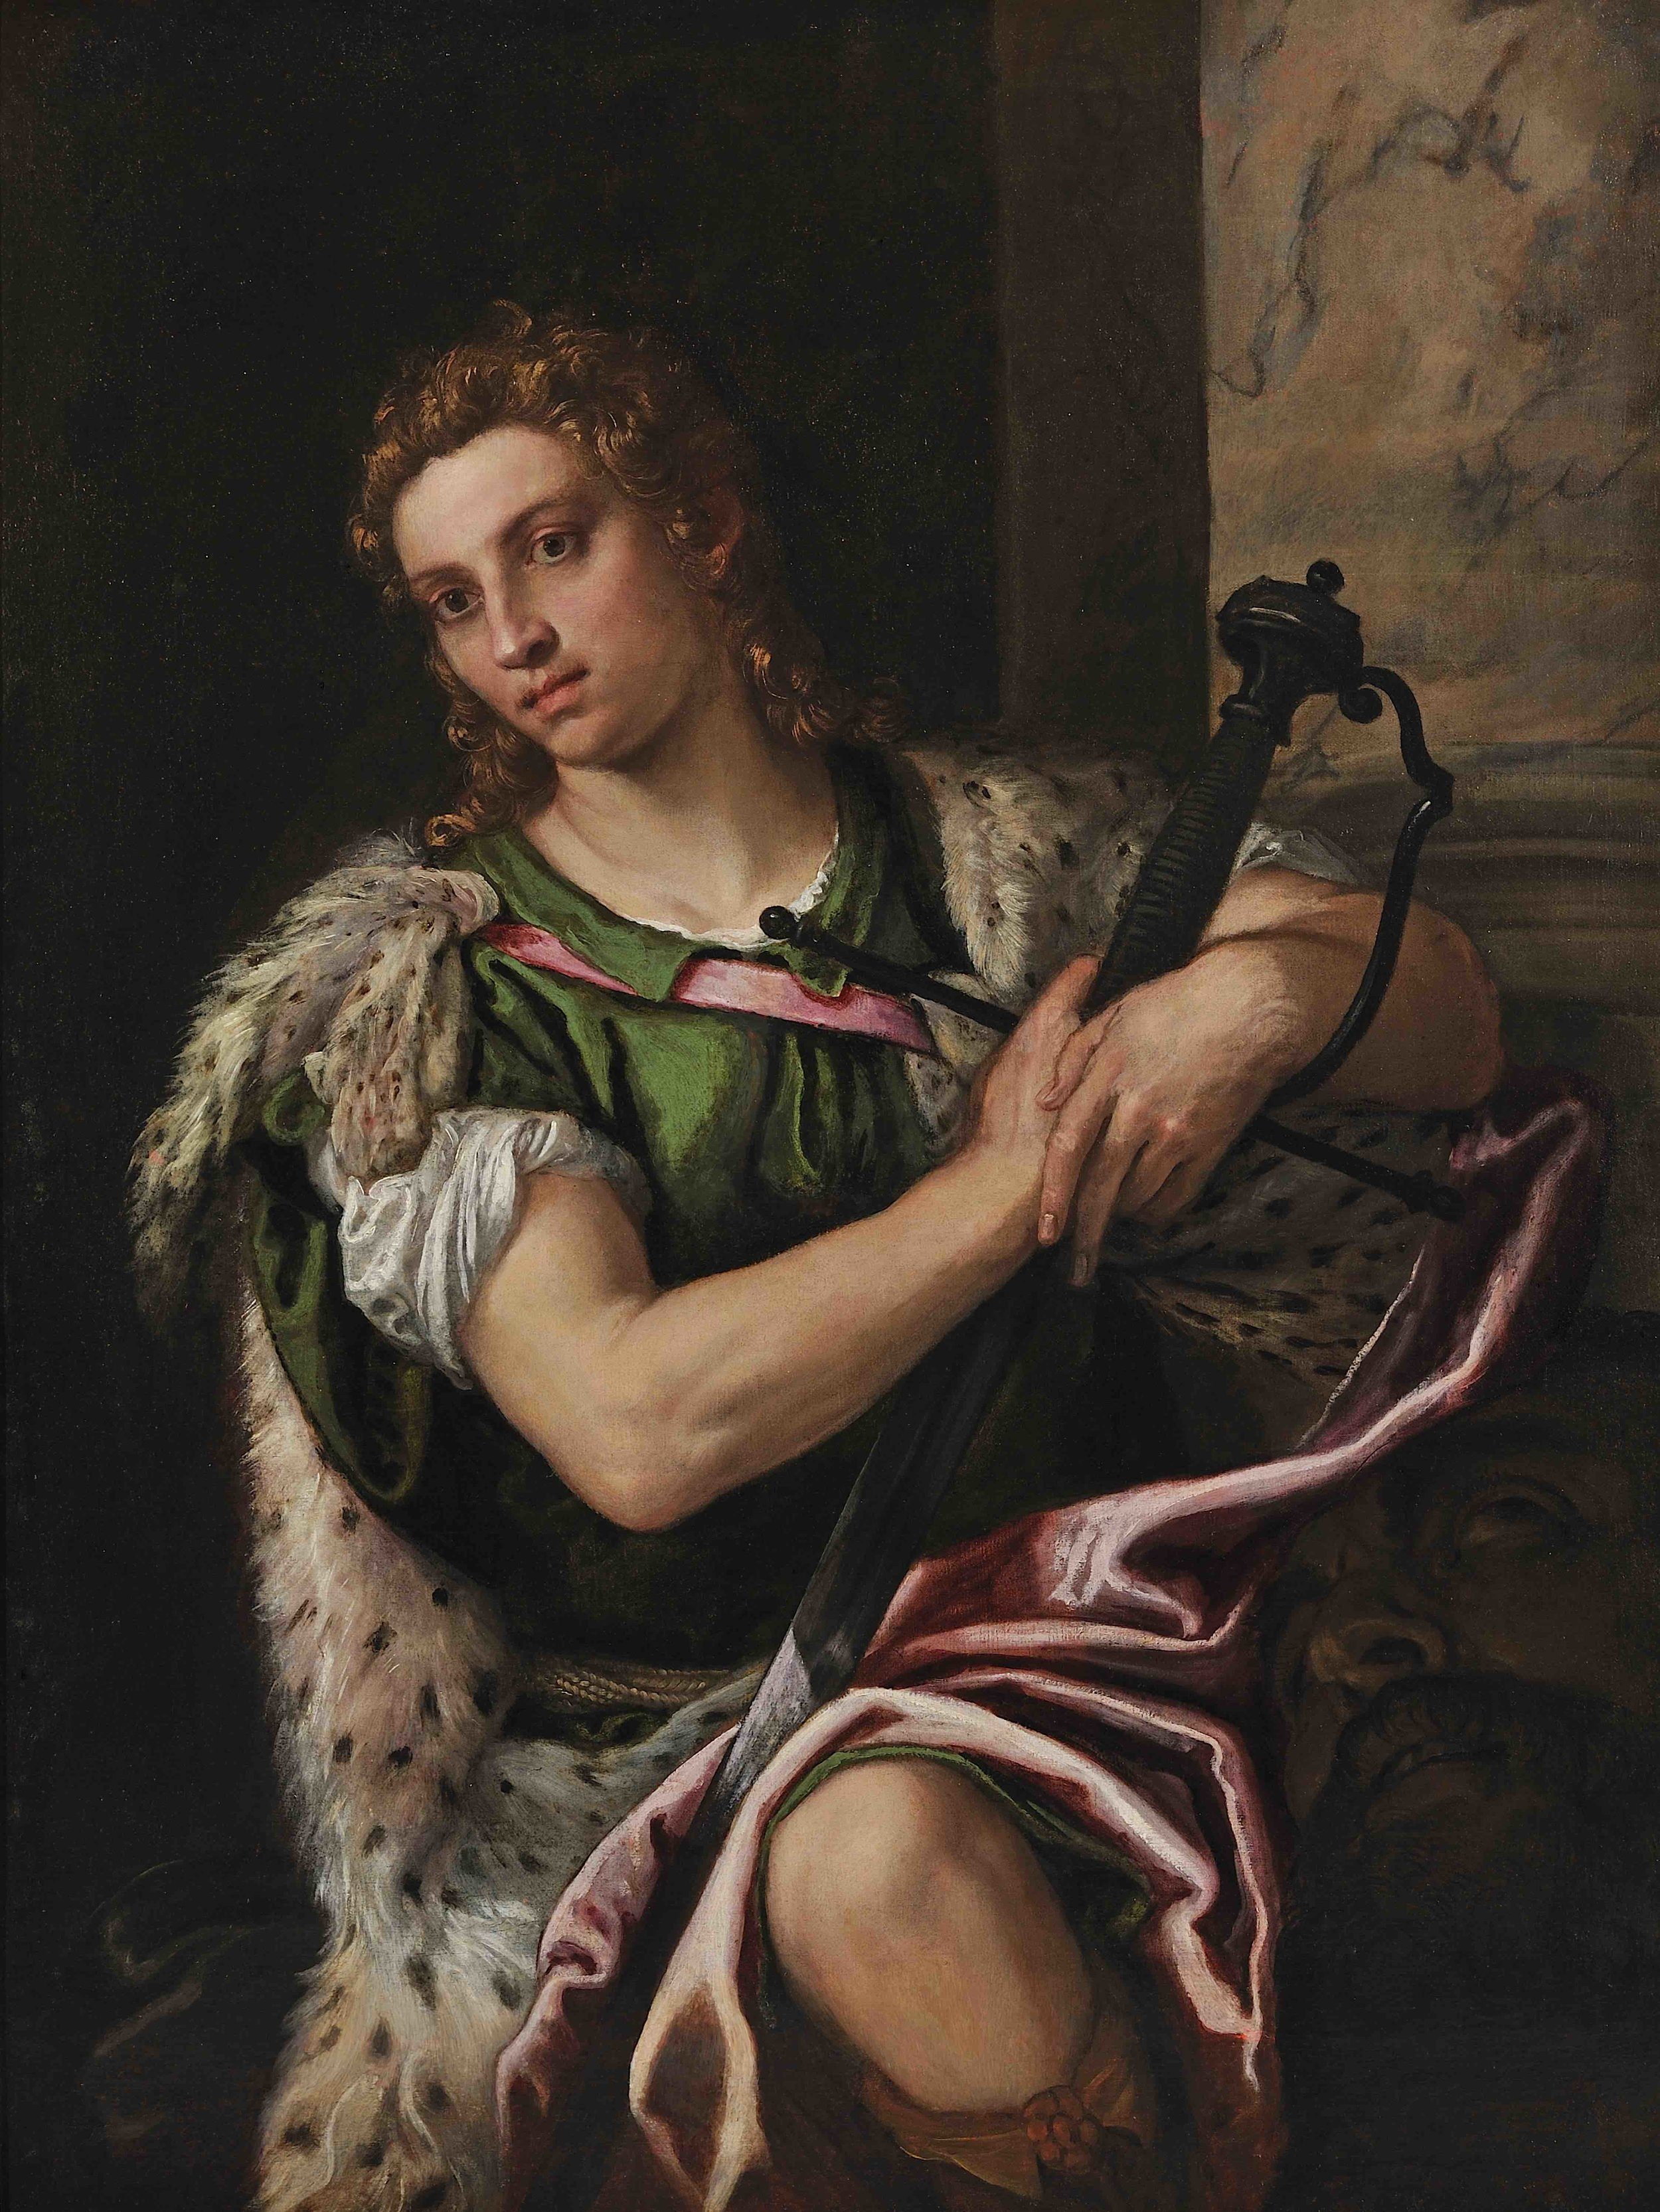 David with the Head of Goliath, Paolo Caliari known as Paolo Veronese, c. 1580